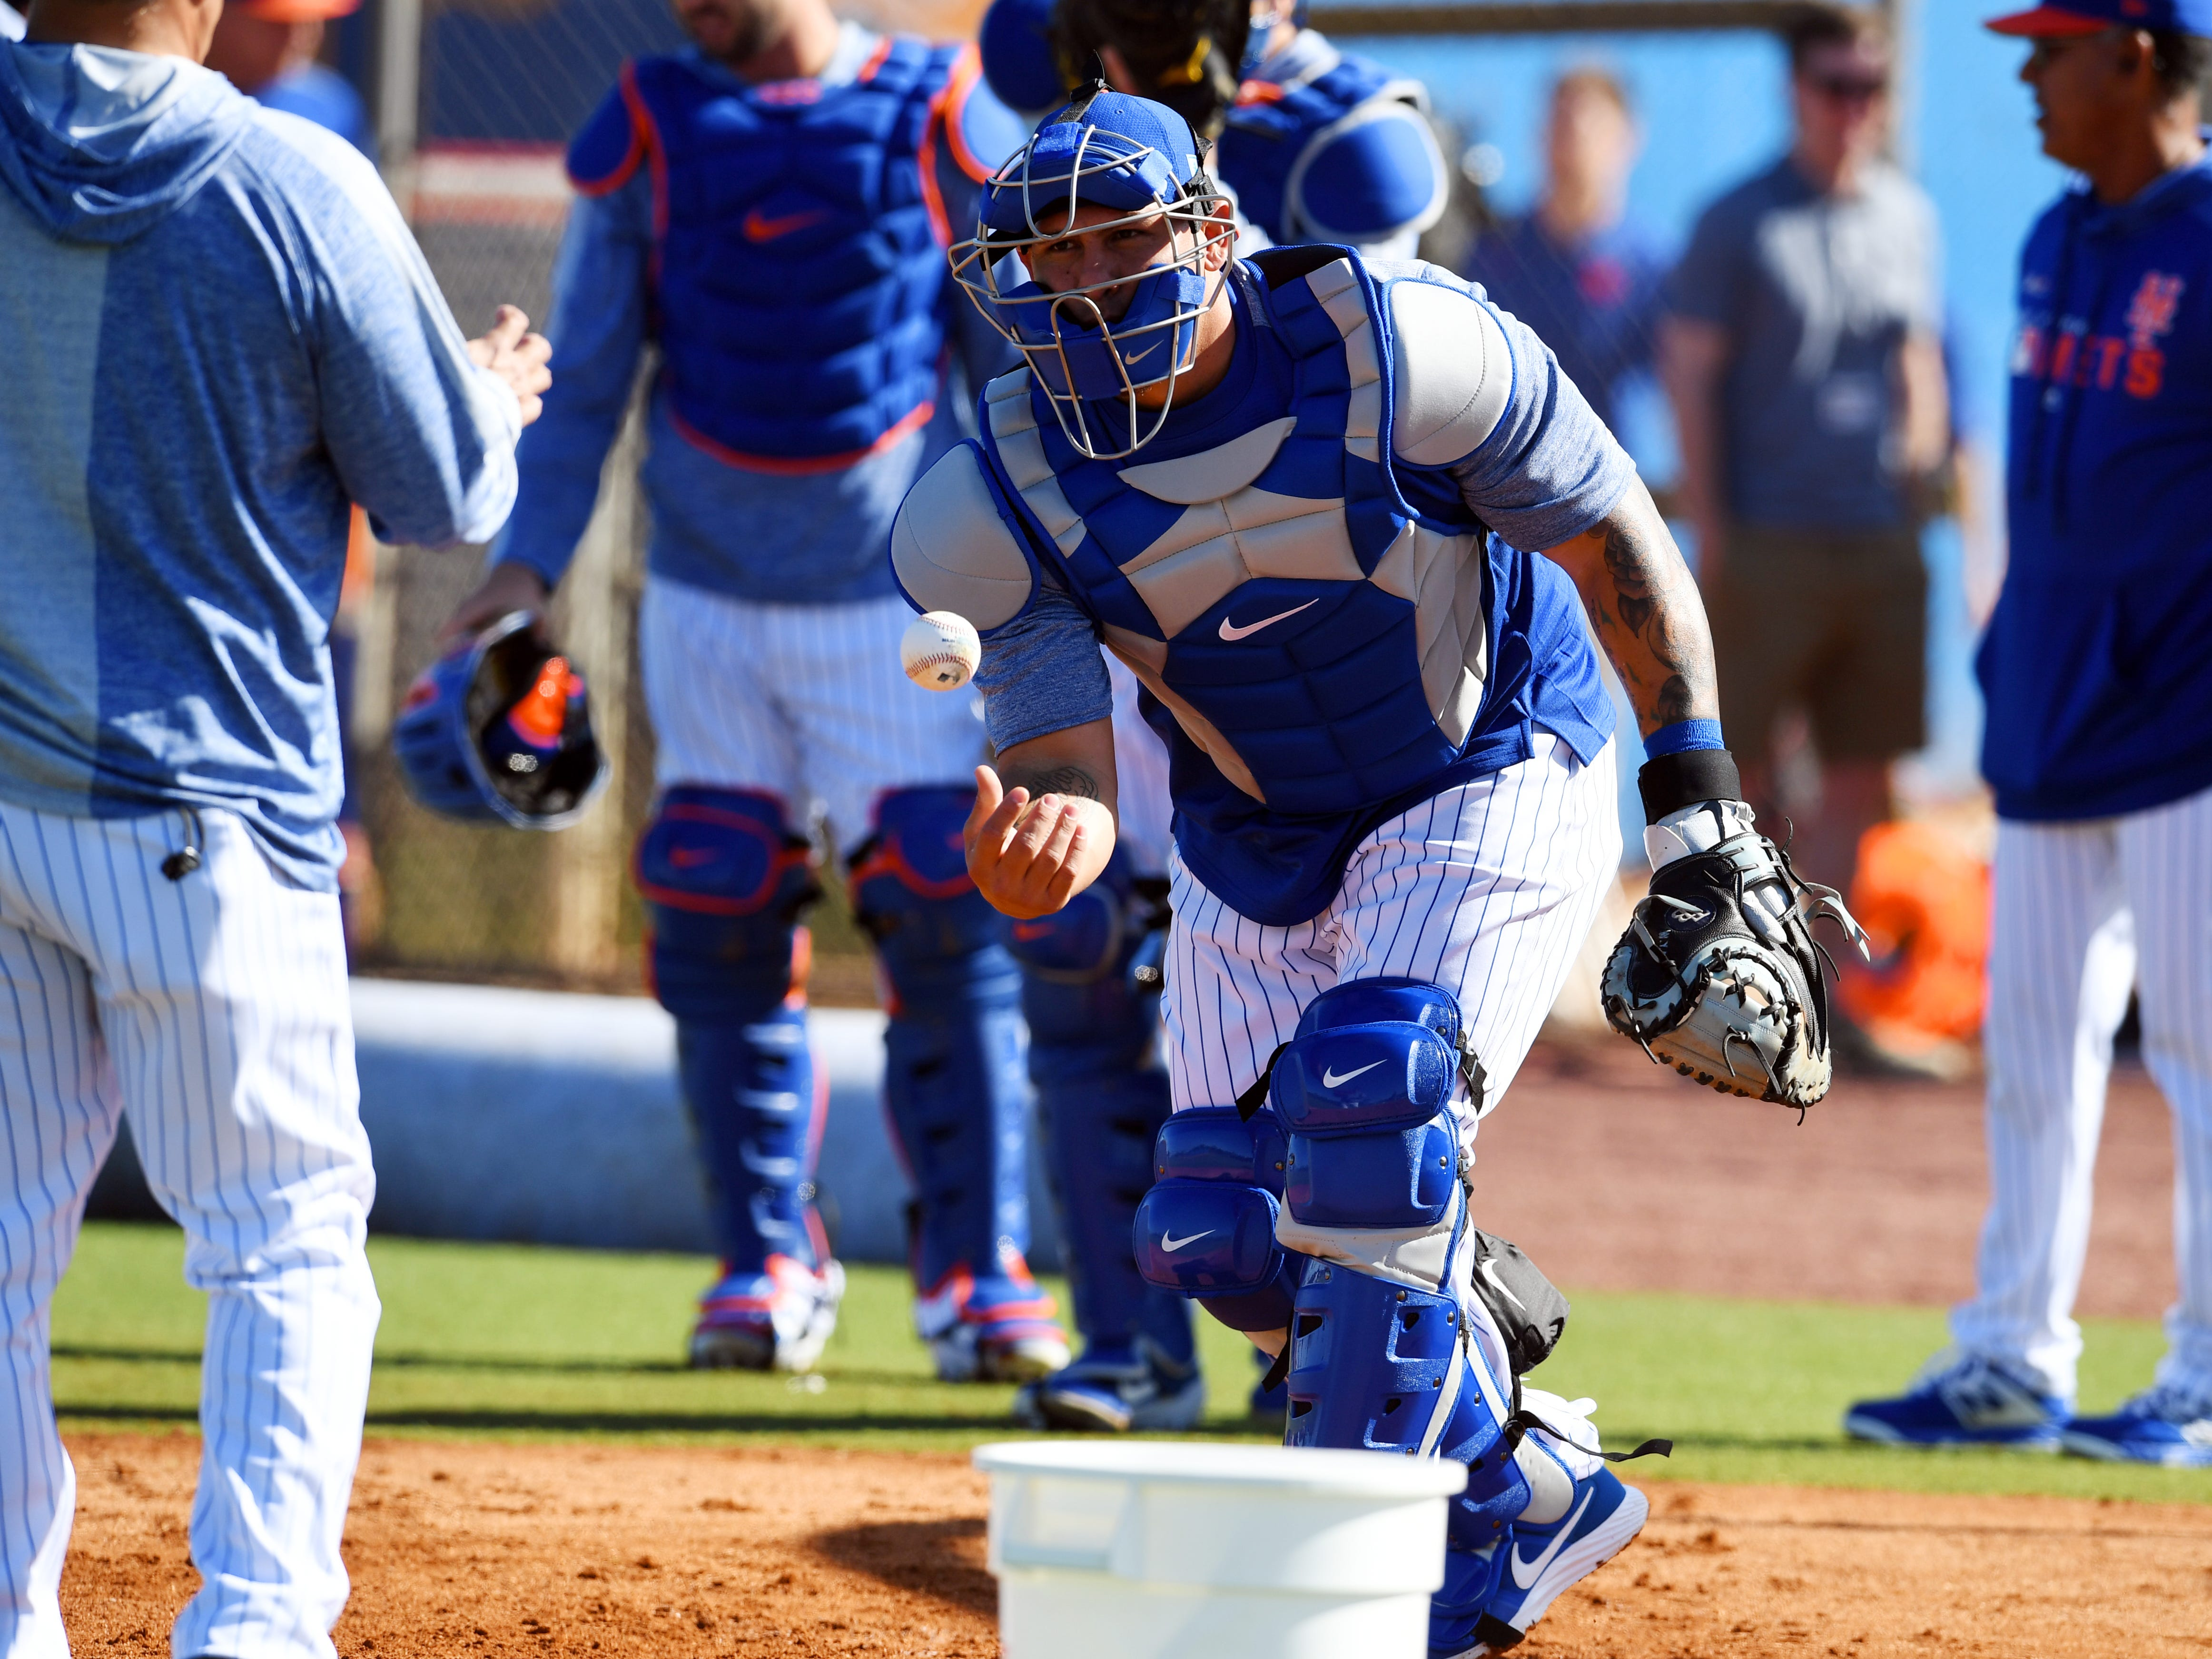 New York Mets catcher Wilson Ramos catches a few ball behind the plate on Thursday, Feb. 14, 2019 during an official spring training workout for the club's pitcher and catchers at First Data Field in Port St. Lucie.